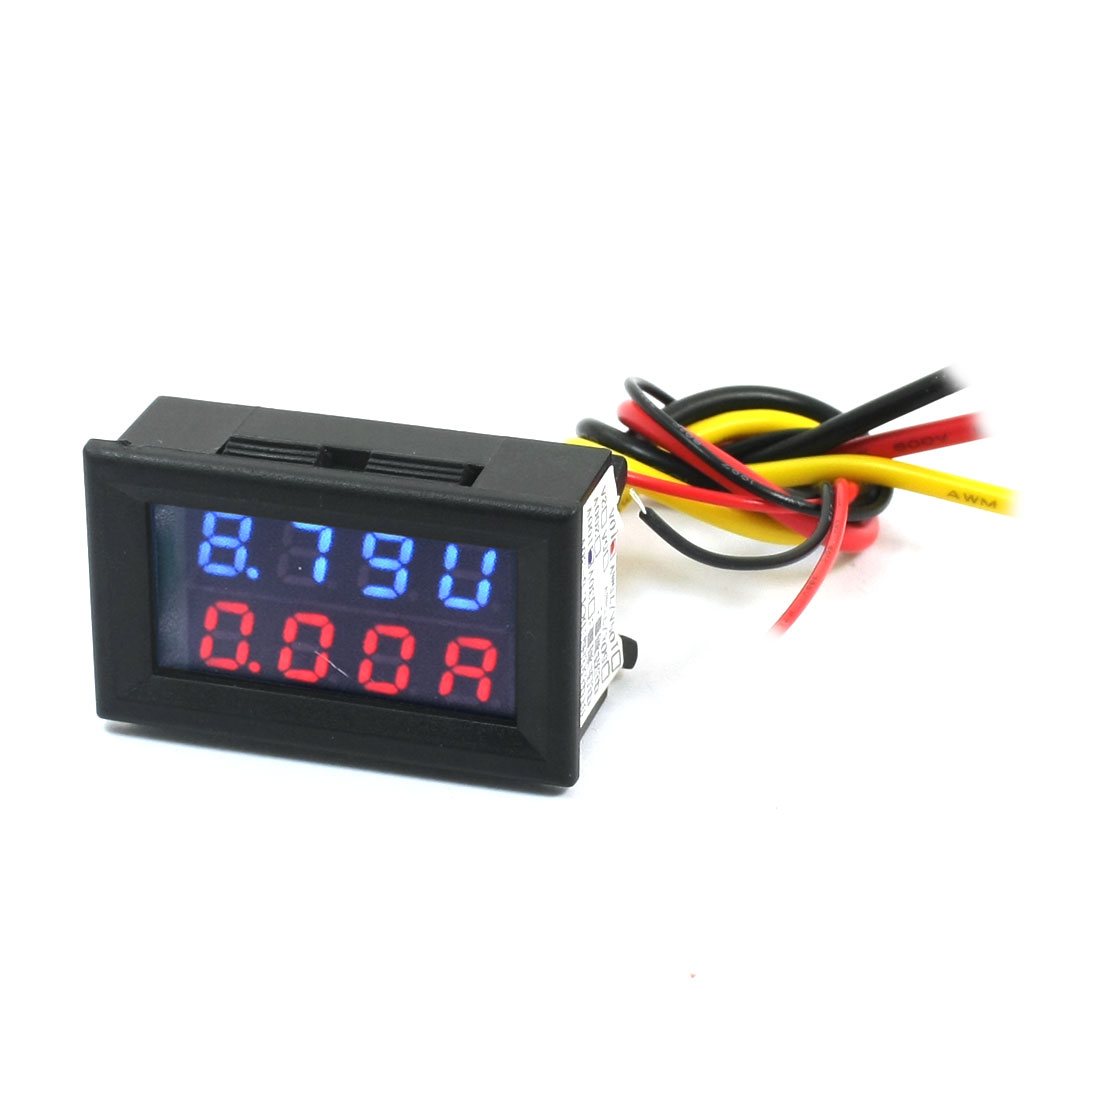 DC 0-100V 0-10A Blue Red Dual LED Digital Volt Voltmeter Ammeter Gauge